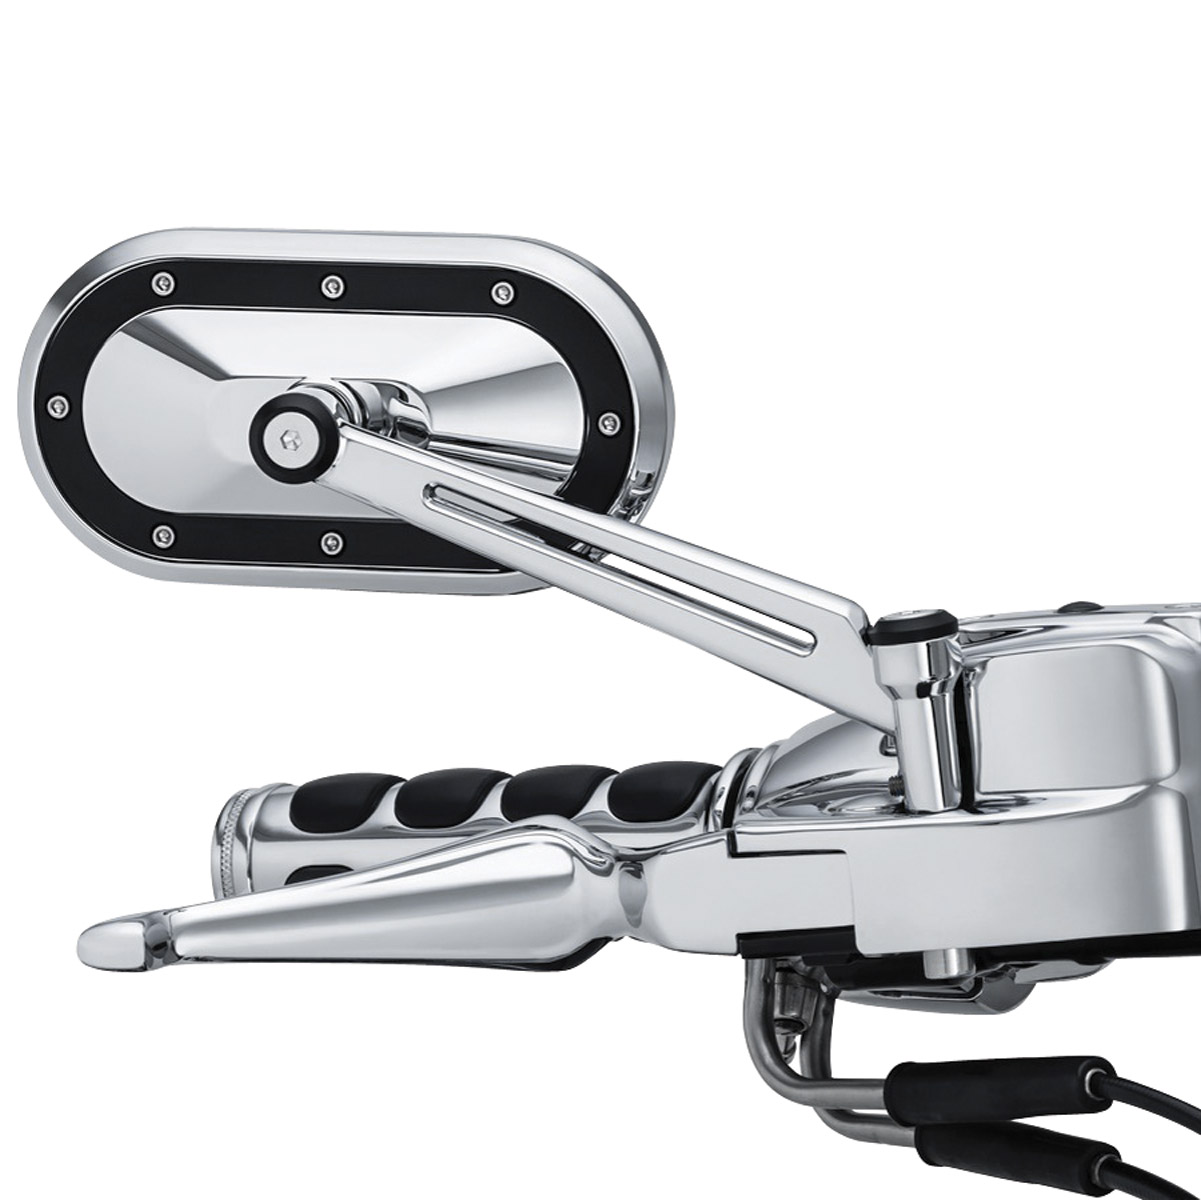 CHROME REAR VIEW MIRROR WITH TWISTED CAGE ACCENT LOWRIDER  BEACH CRUISER BIKE